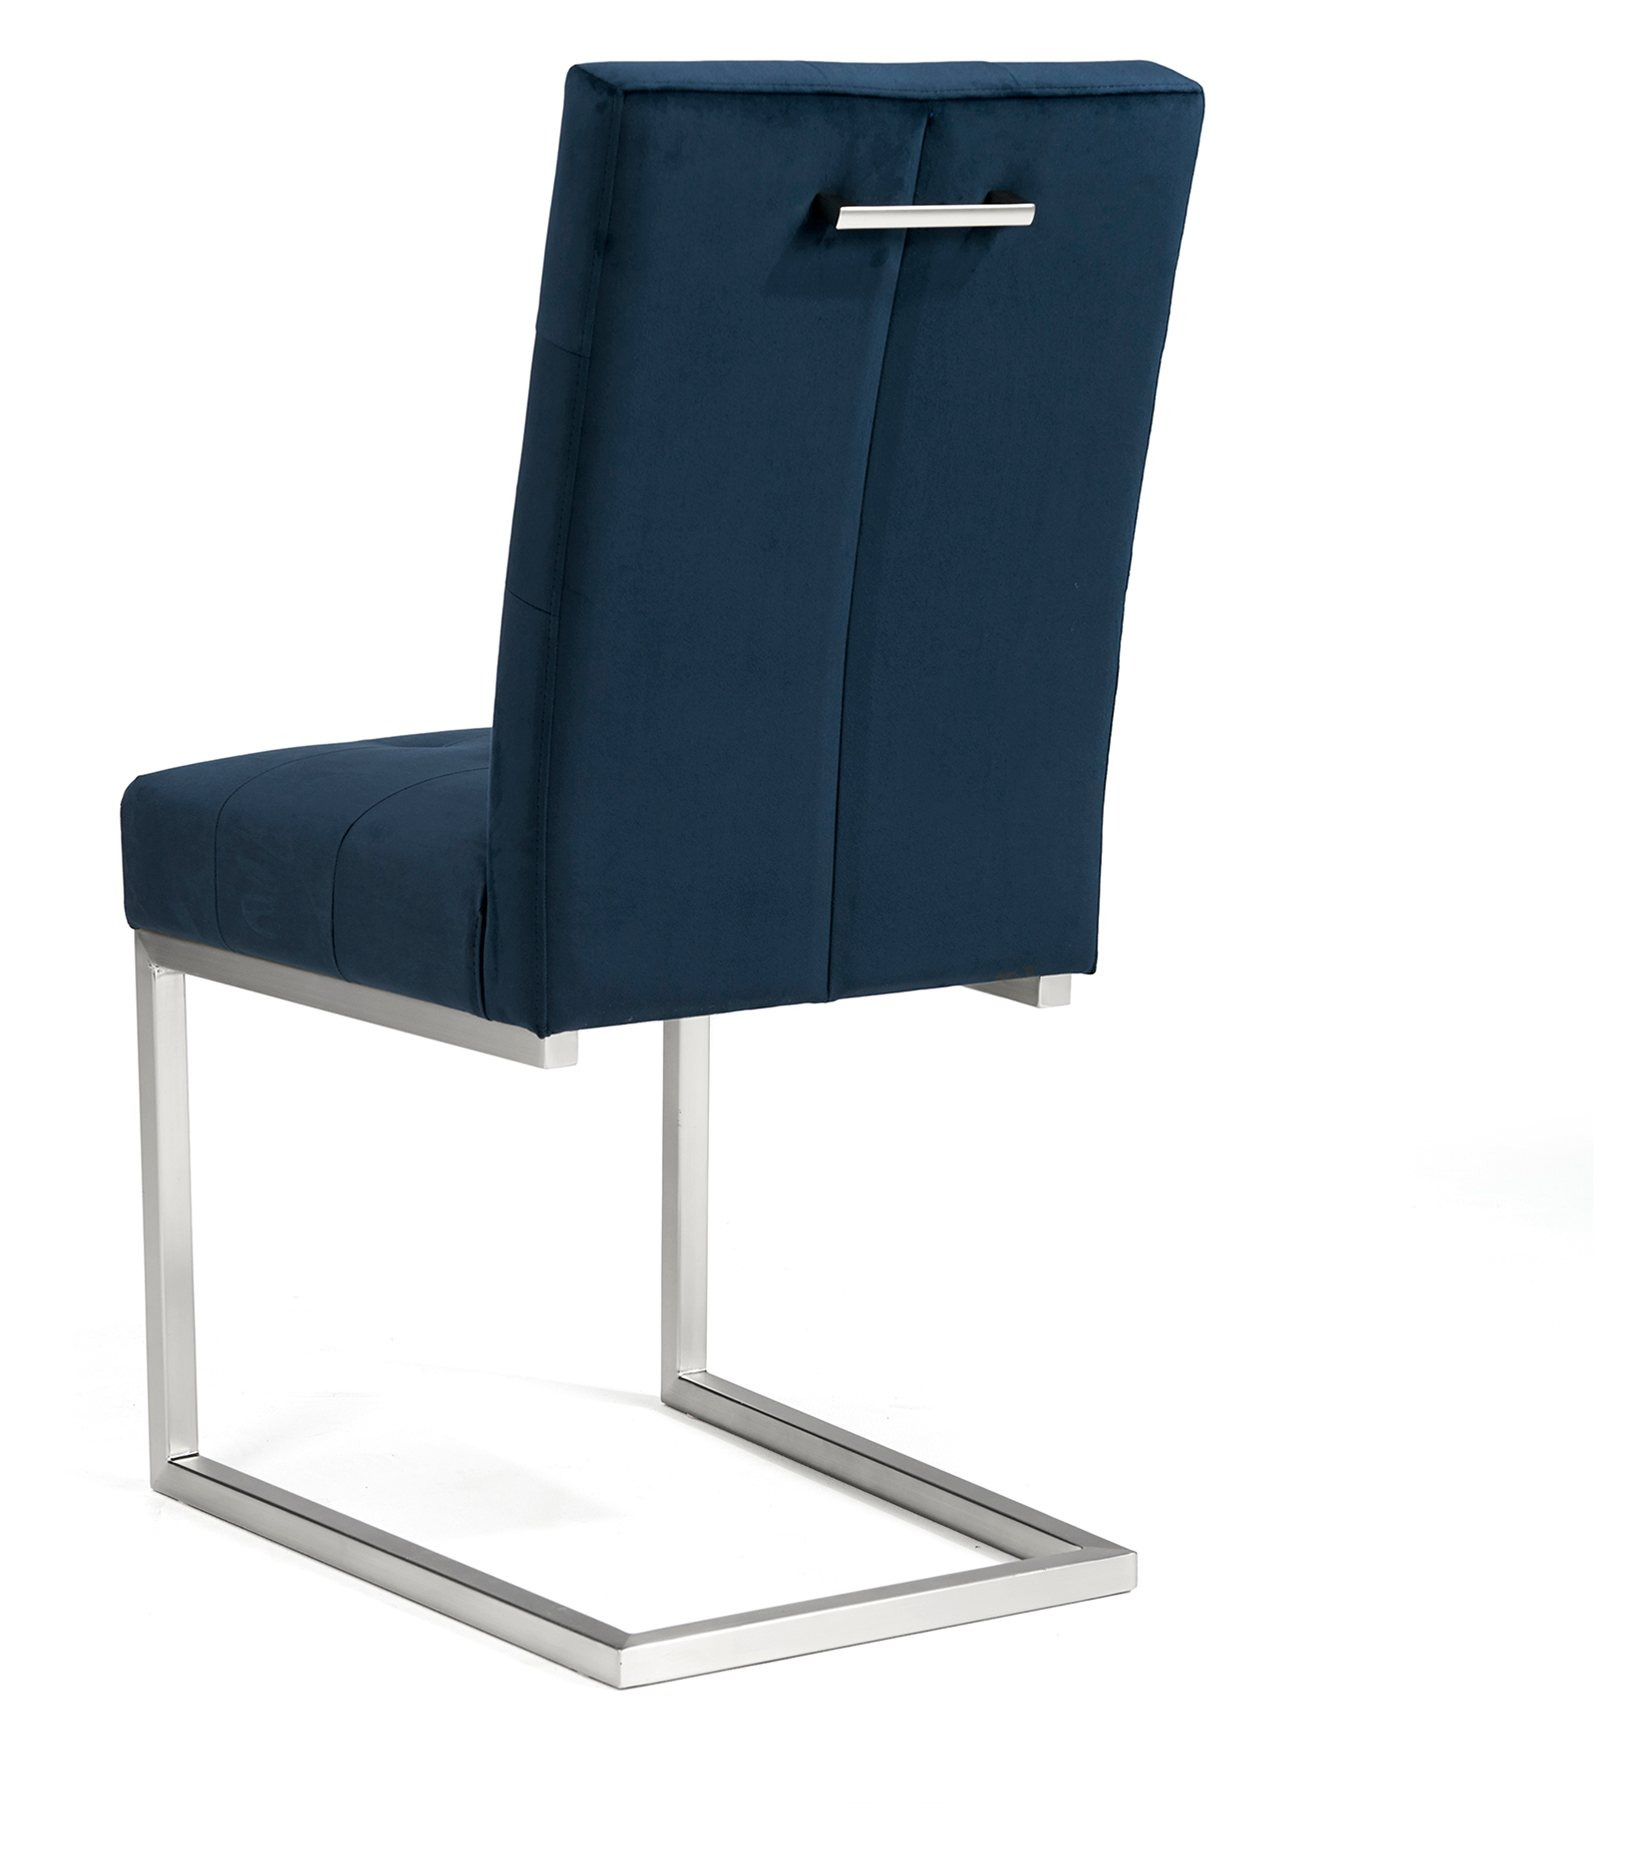 BRINDISI BLUE DINING CHAIR - BACK DETAIL